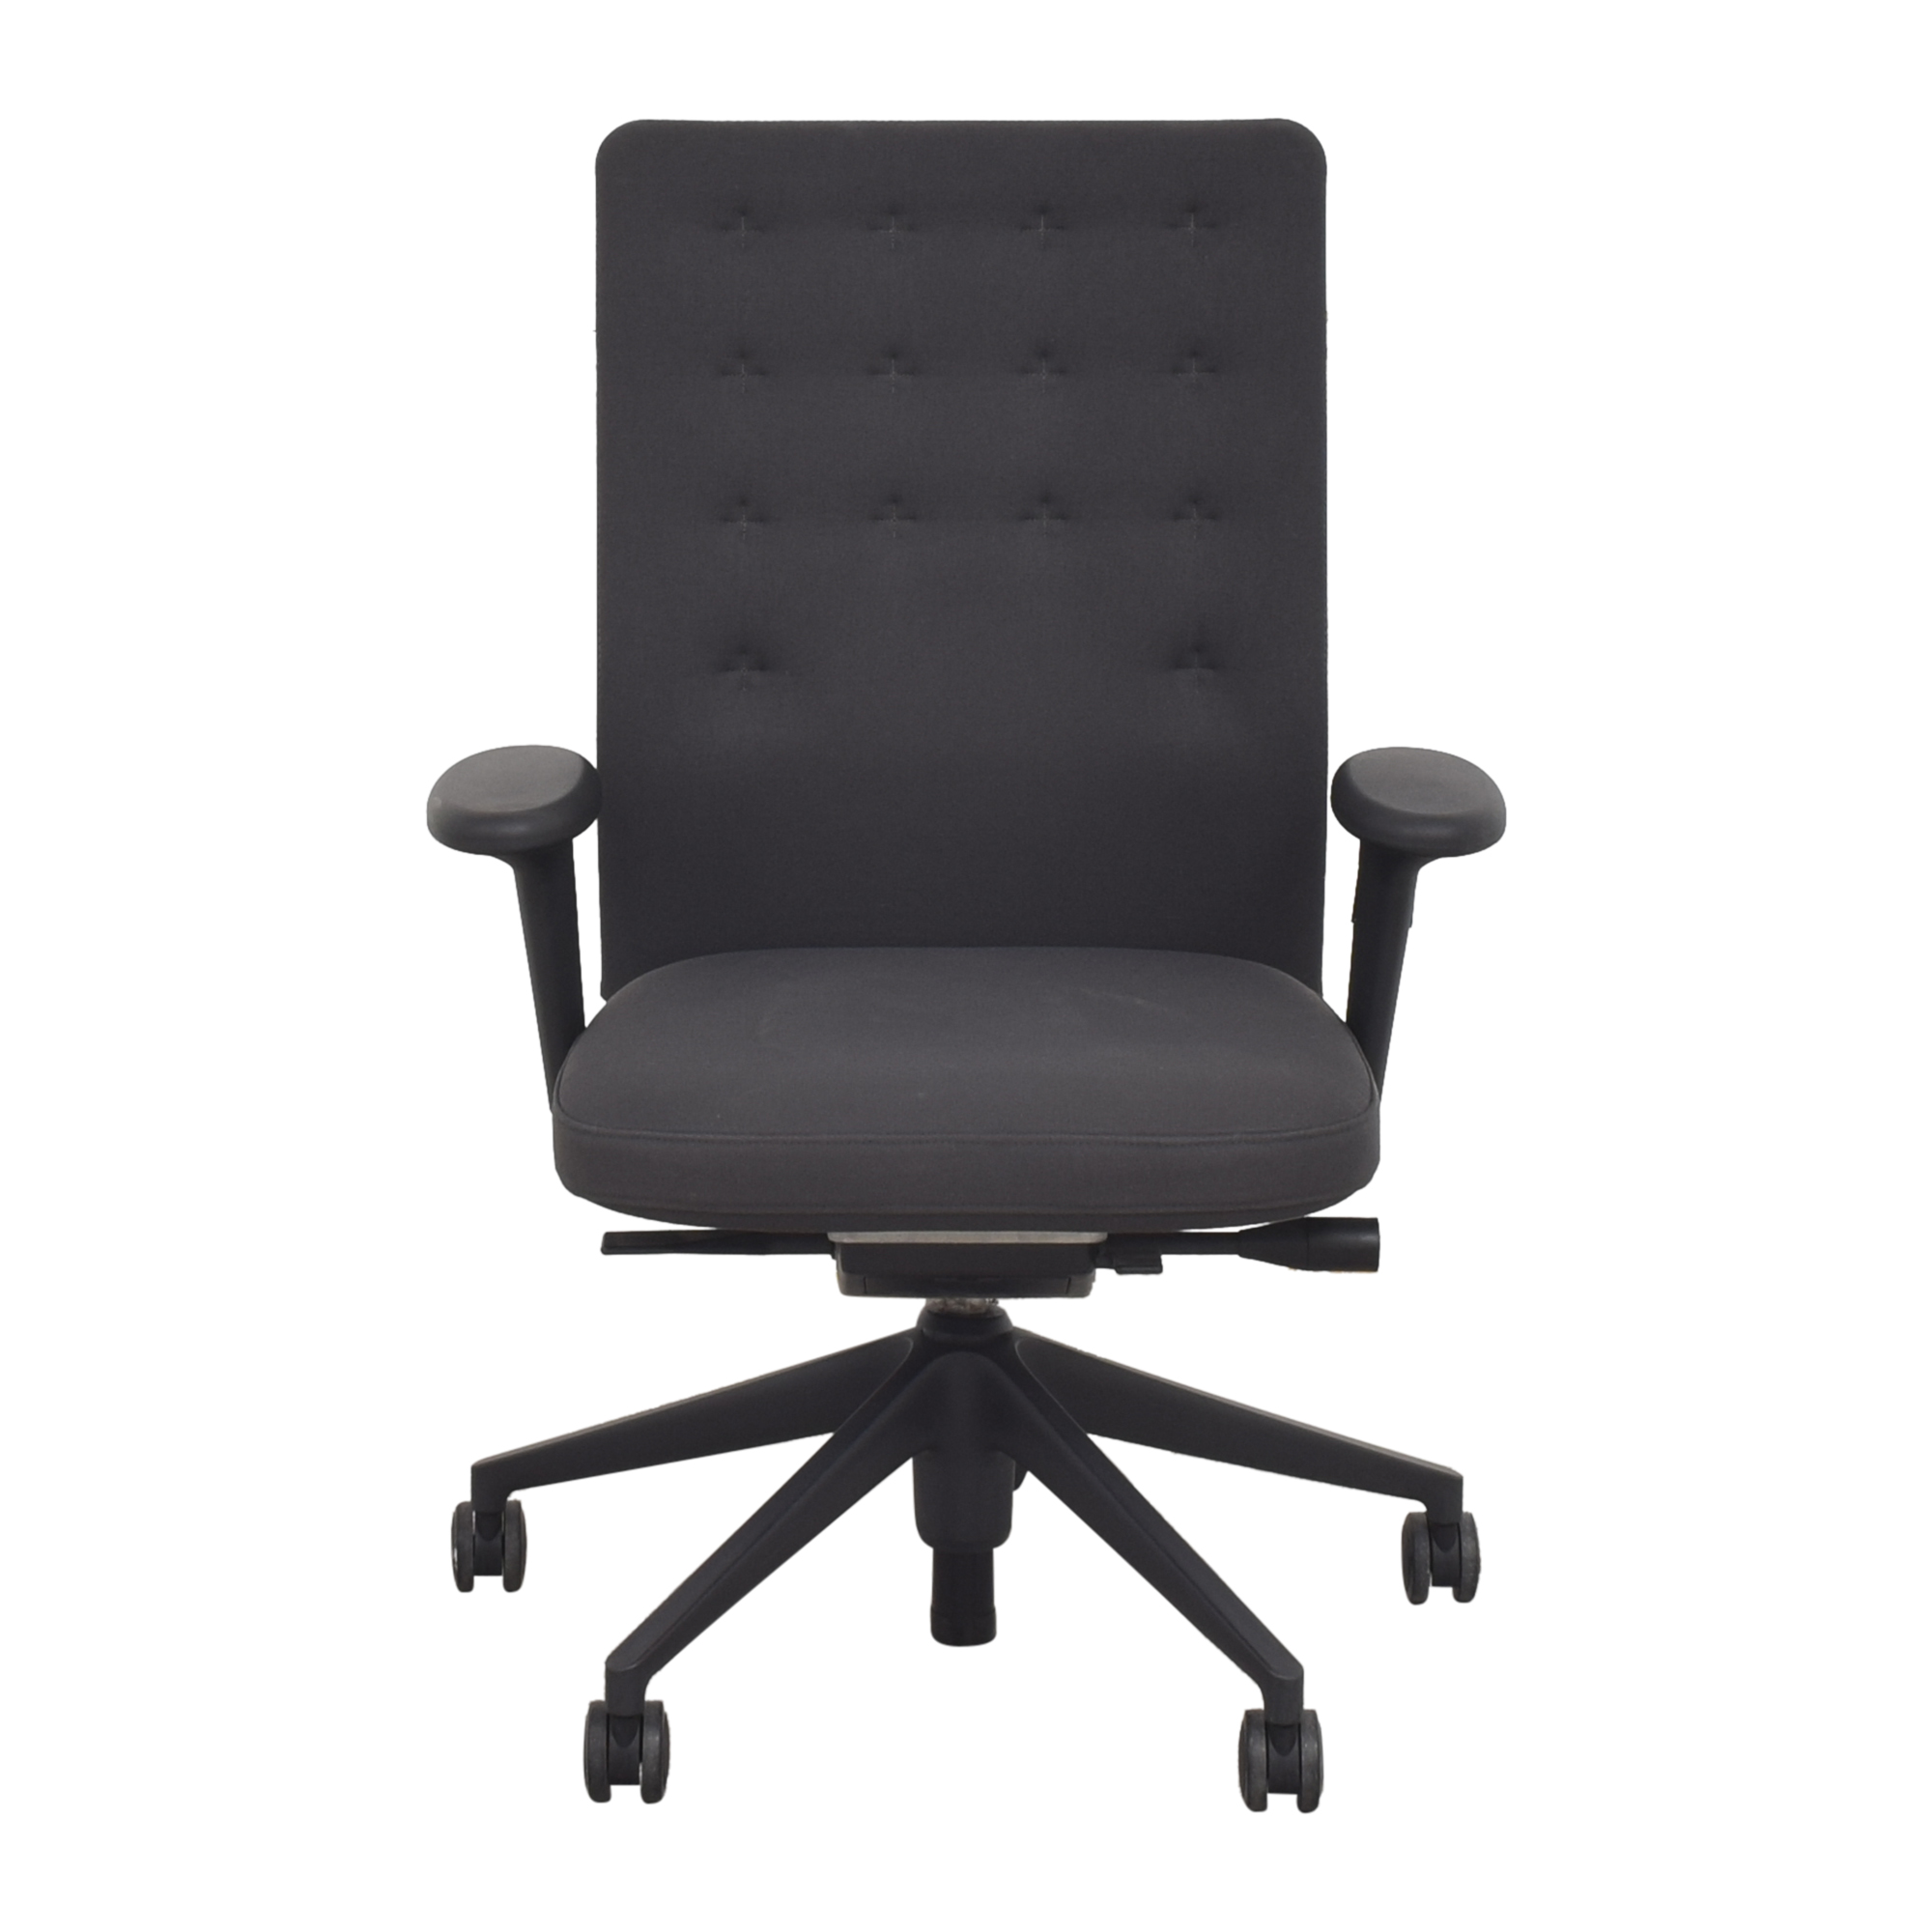 Vitra Vitra ID Trim Office Chair nj